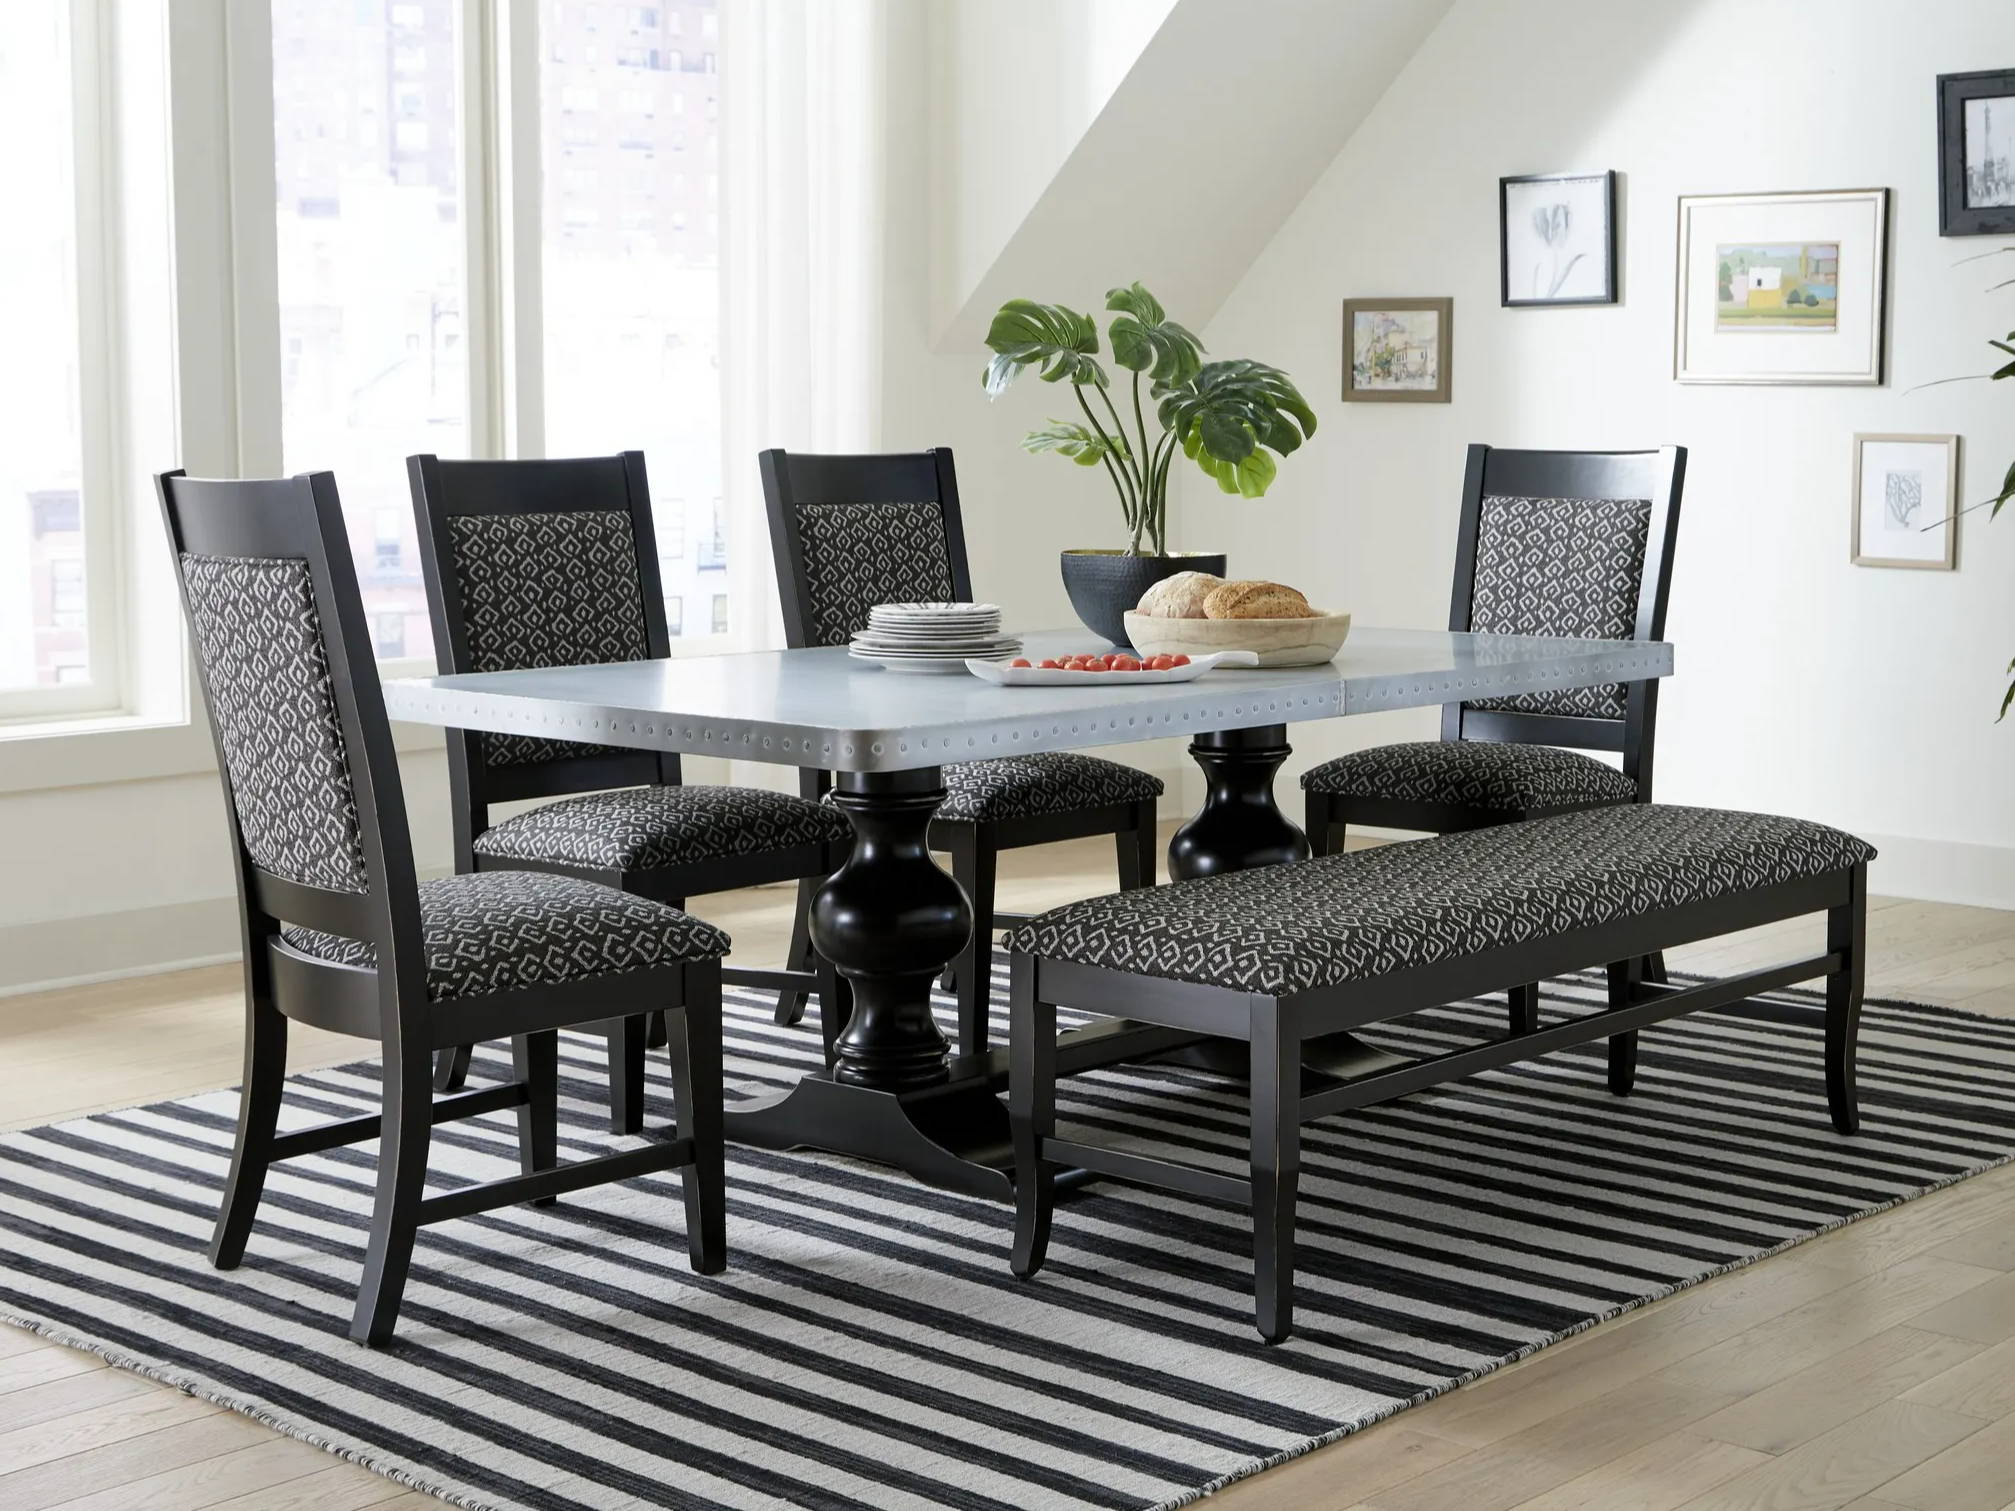 black dining chairs and bench around large dining table